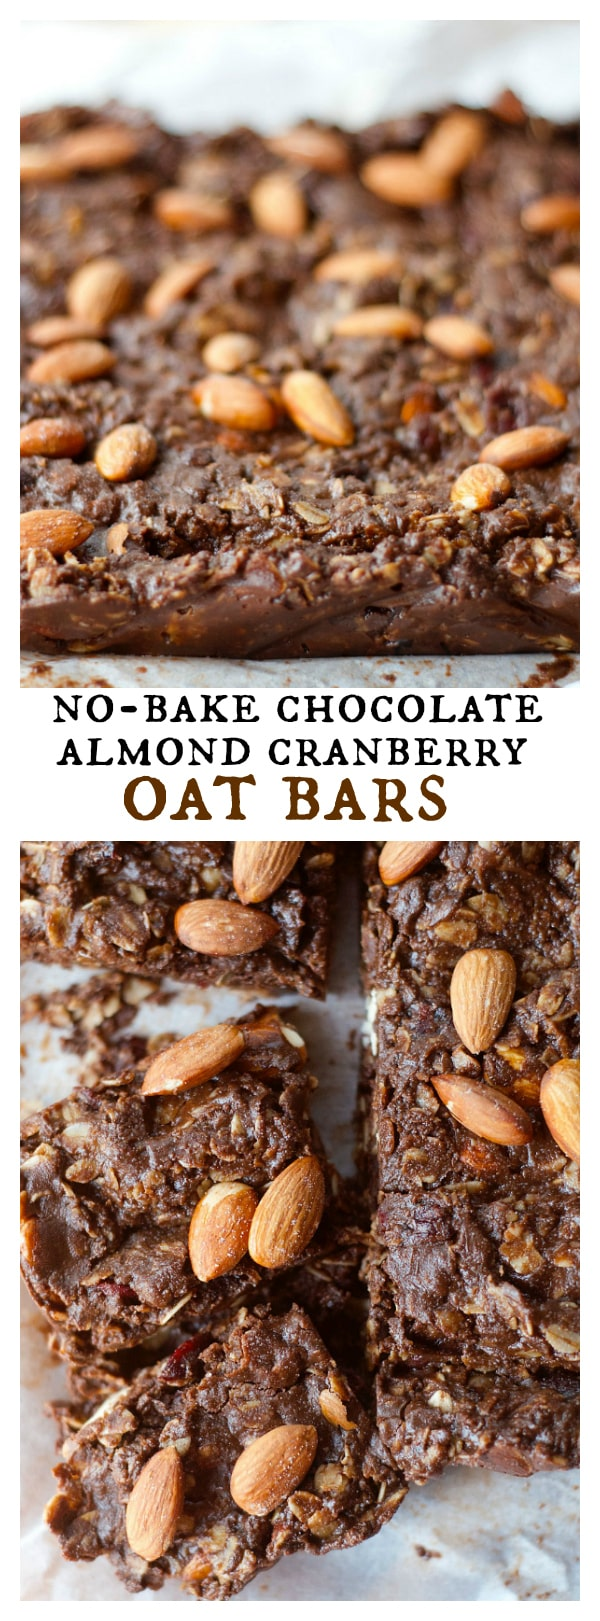 NO-Bake Chocolate Almond Cranberry Oat Bars